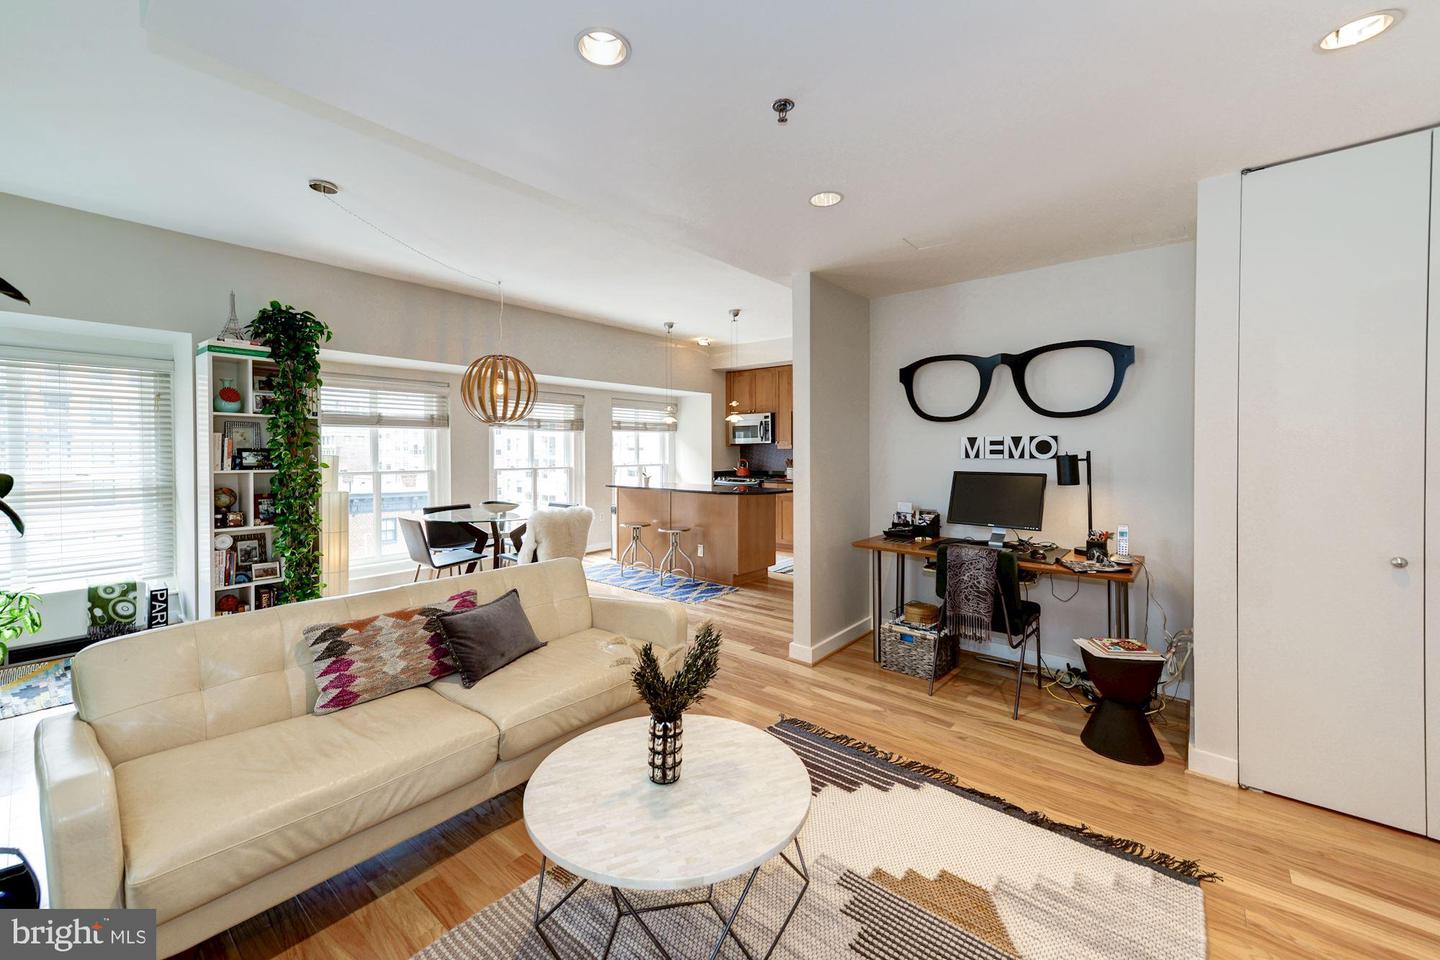 Single Family for Sale at 675 E St NW #500 675 E St NW #500 Washington, District Of Columbia 20004 United States